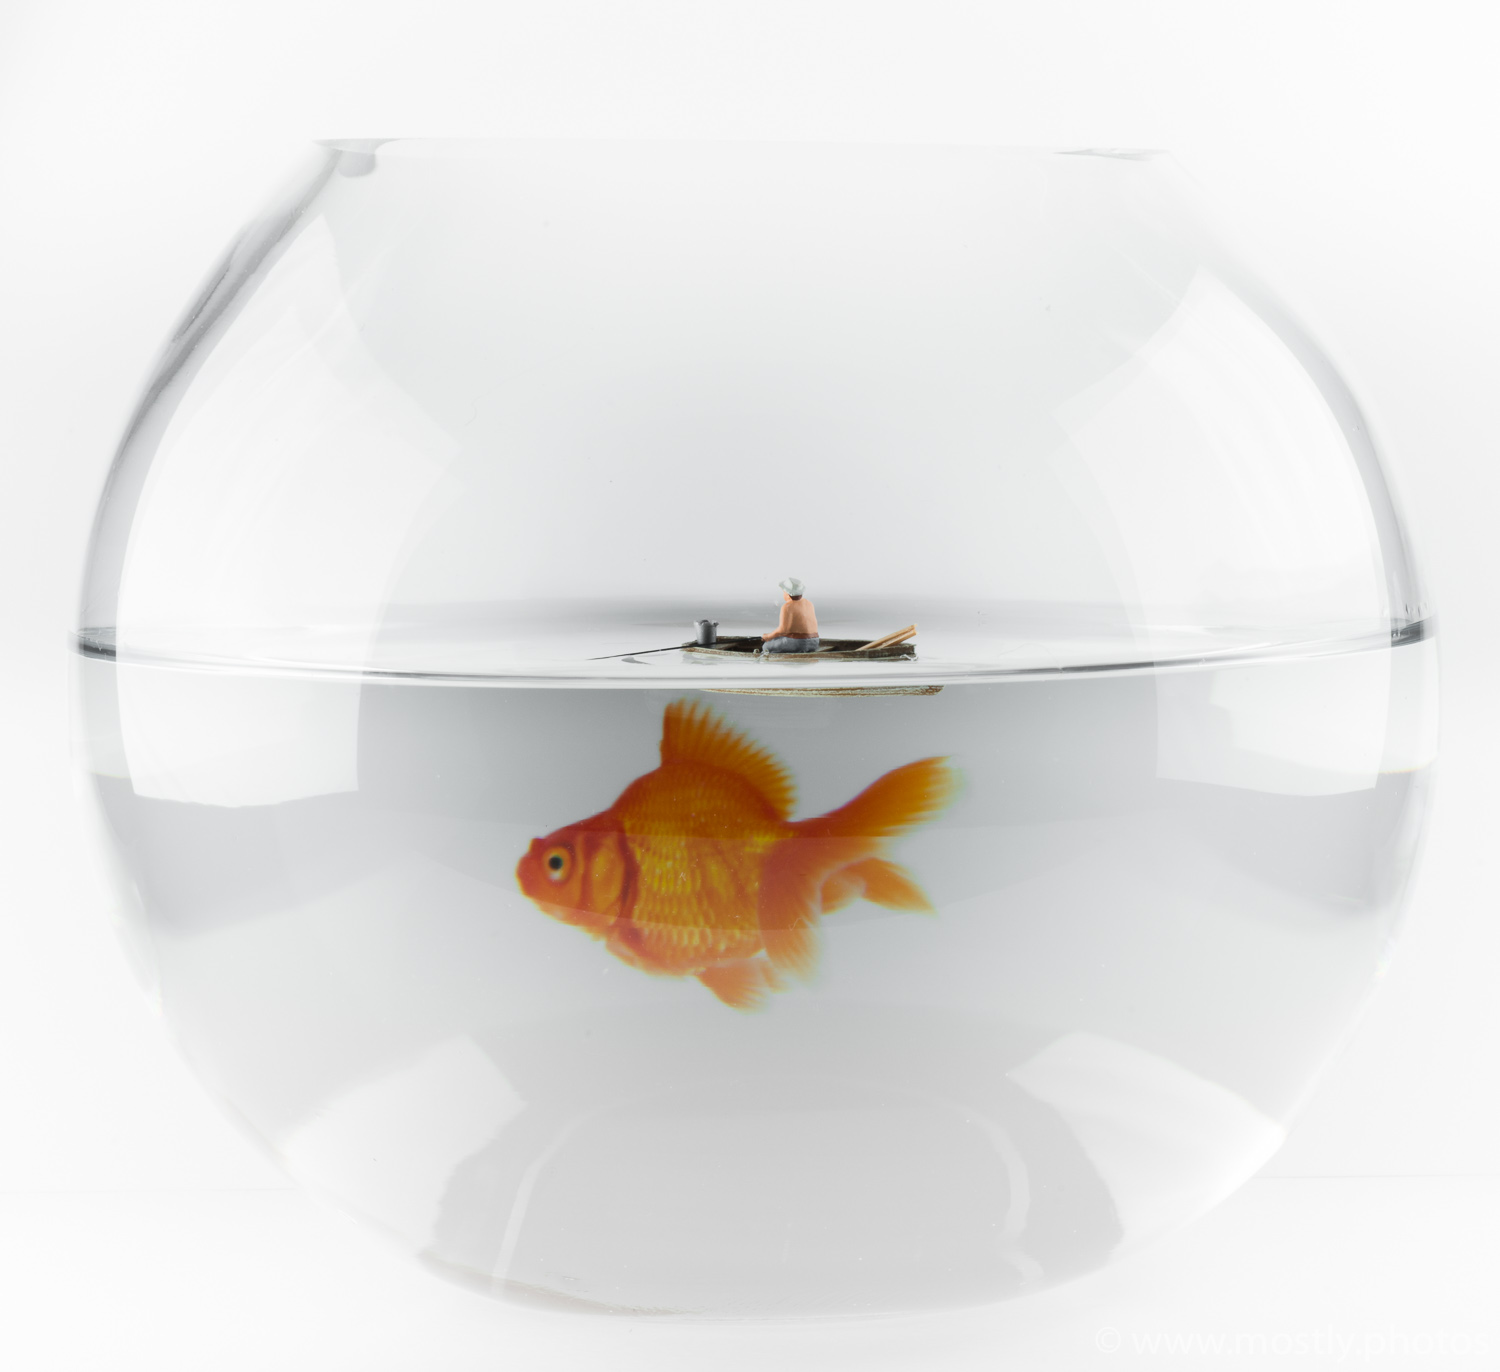 We're going to need a bigger boat! Preiser Model Figure in a Glass Goldfish Bowl